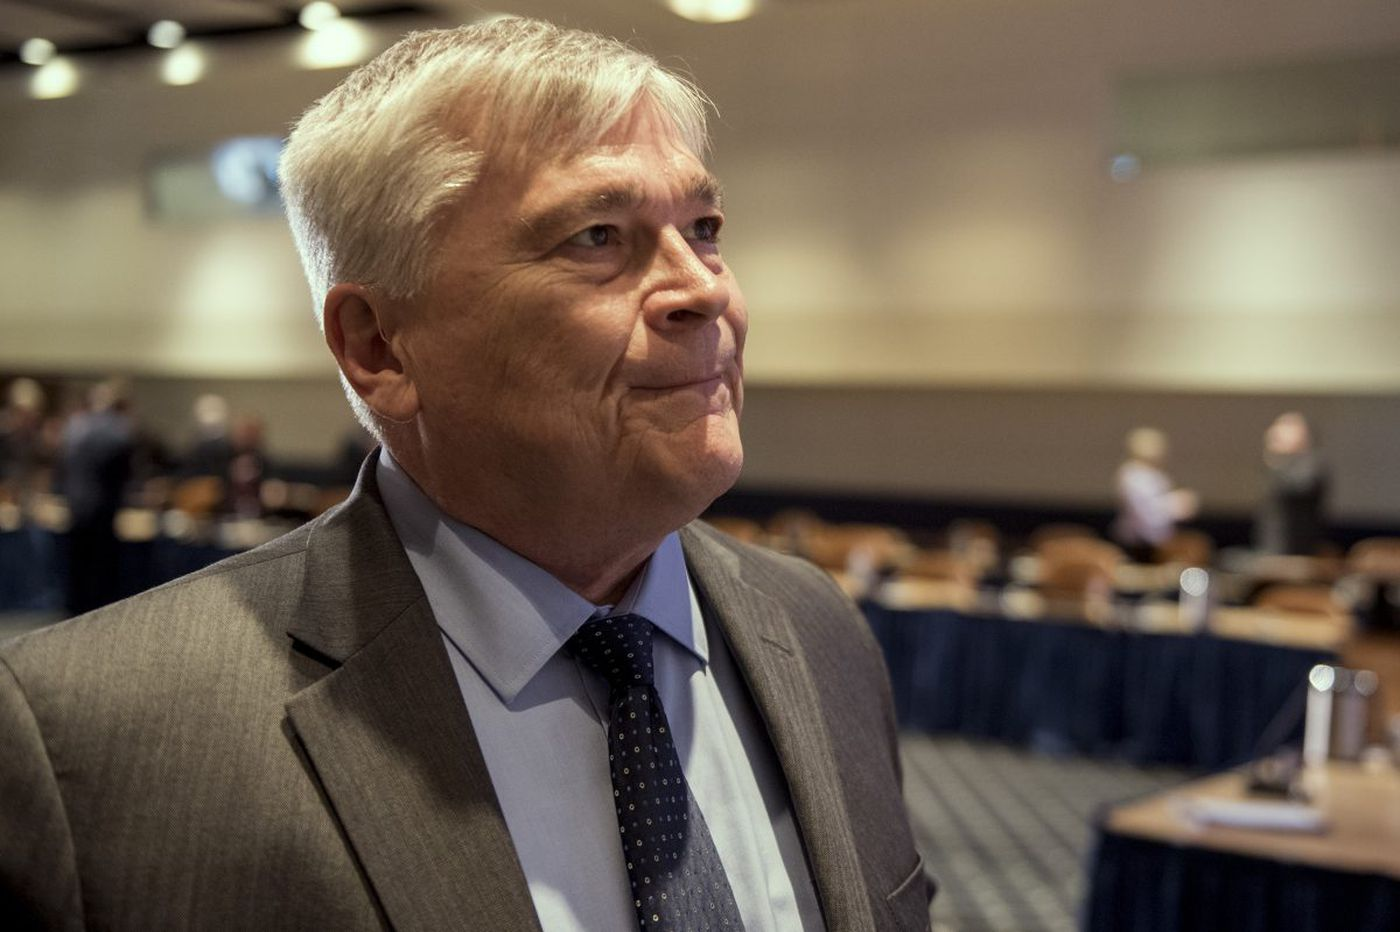 Penn State president co-leads national meeting on fraternities